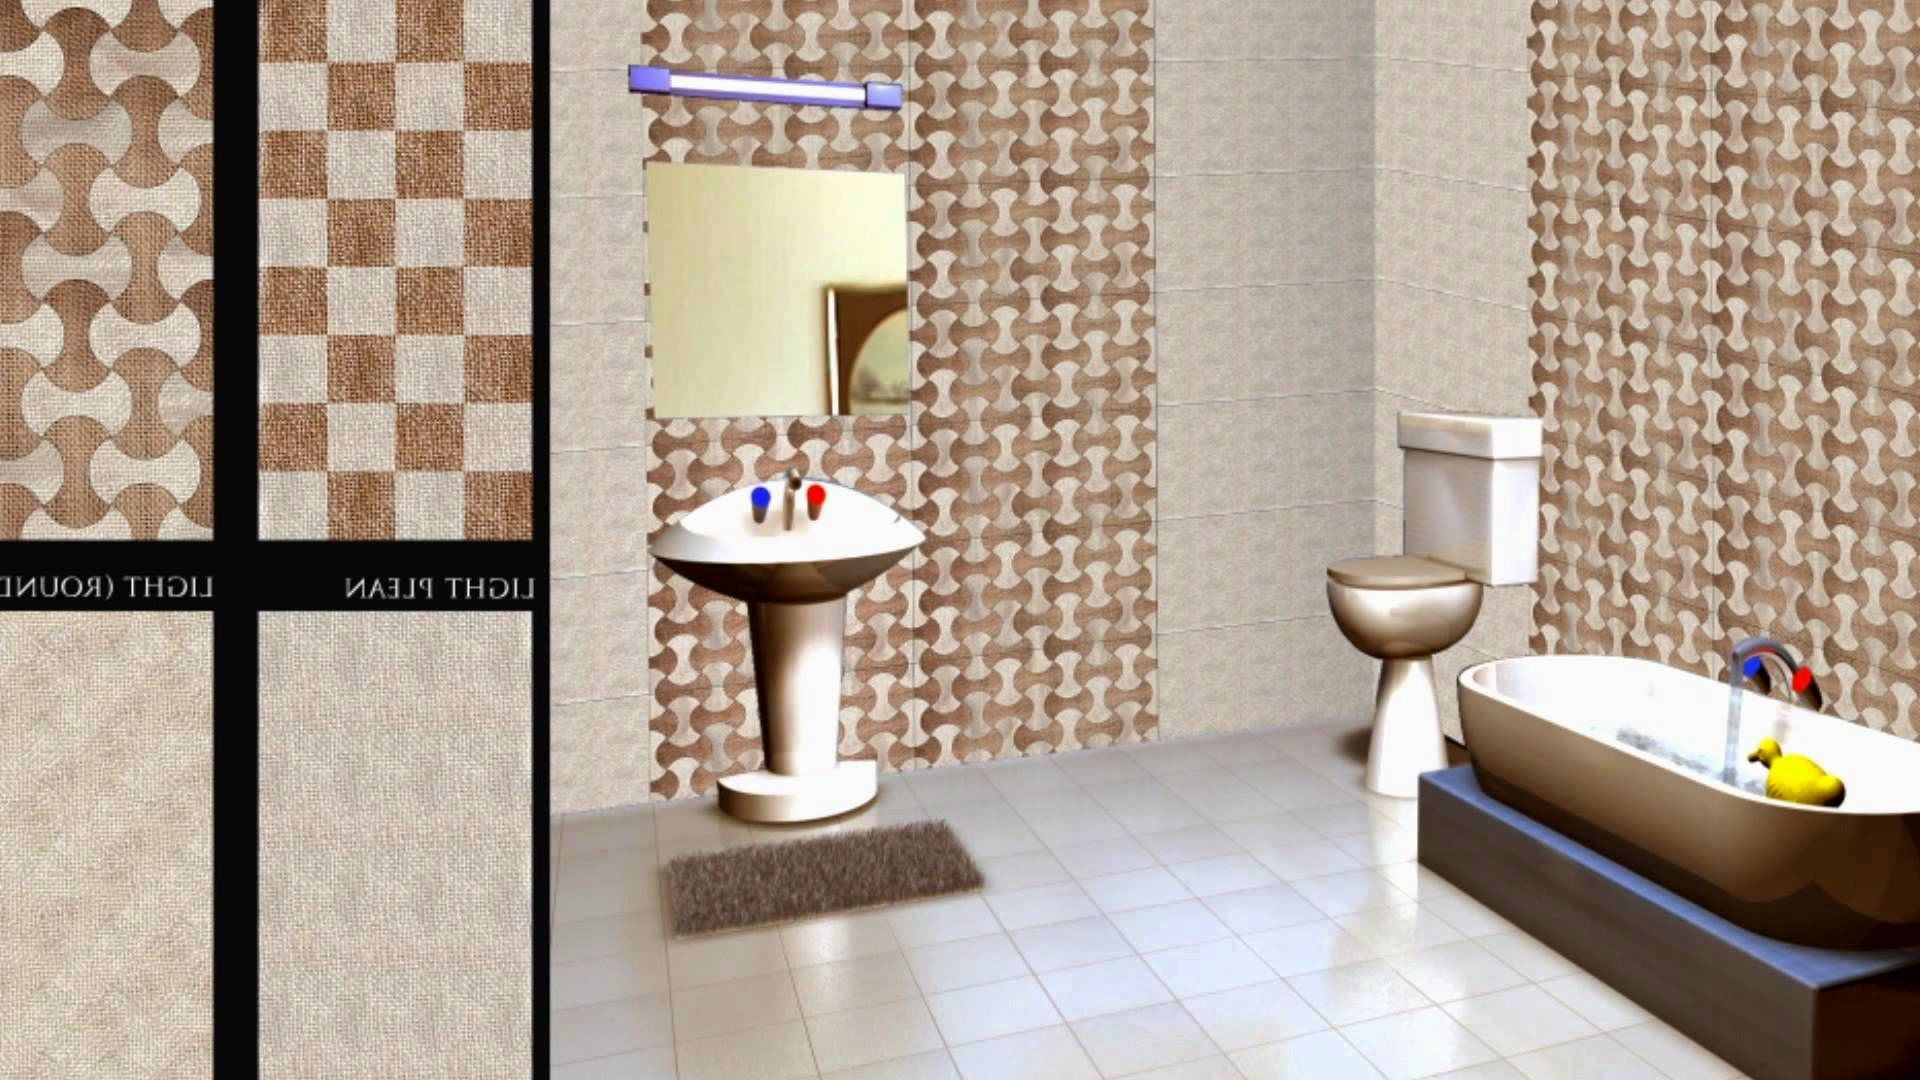 inspirational how to remodel a bathroom model-New How to Remodel A Bathroom Image